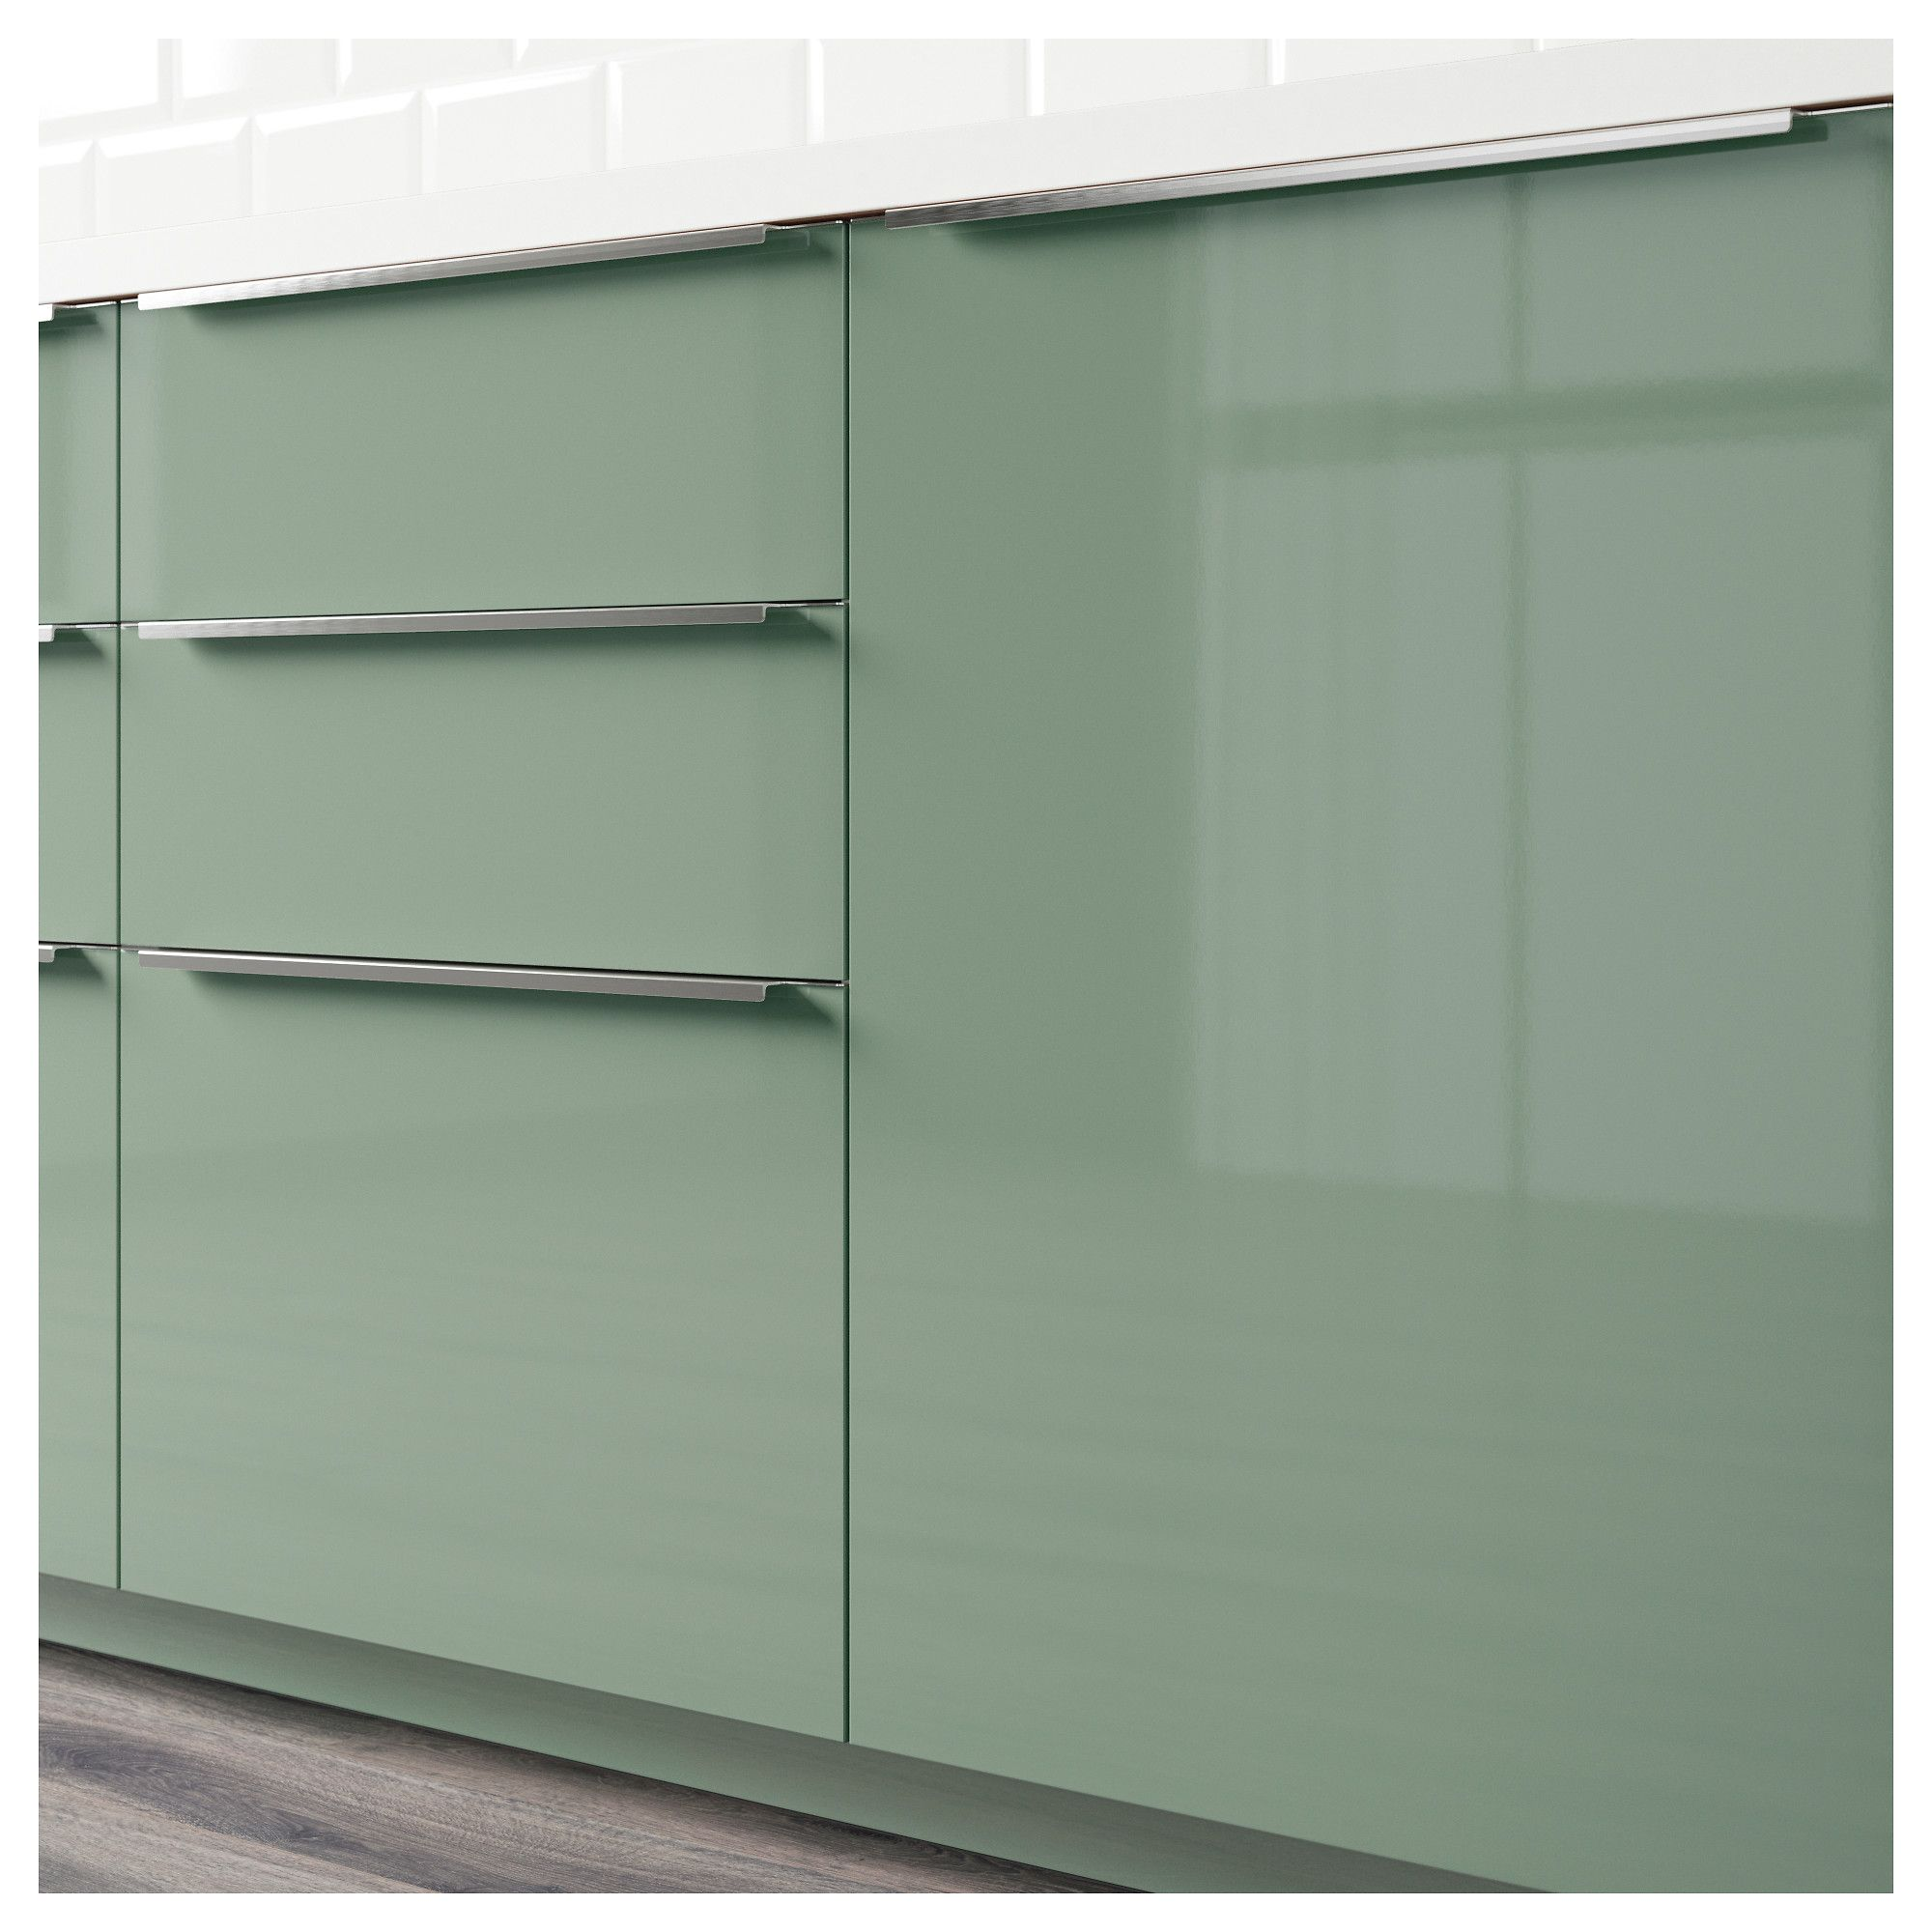 Kallarp Gris Turquoise Kitchen Kallarp Ikea Kitchen In 2019 High Gloss